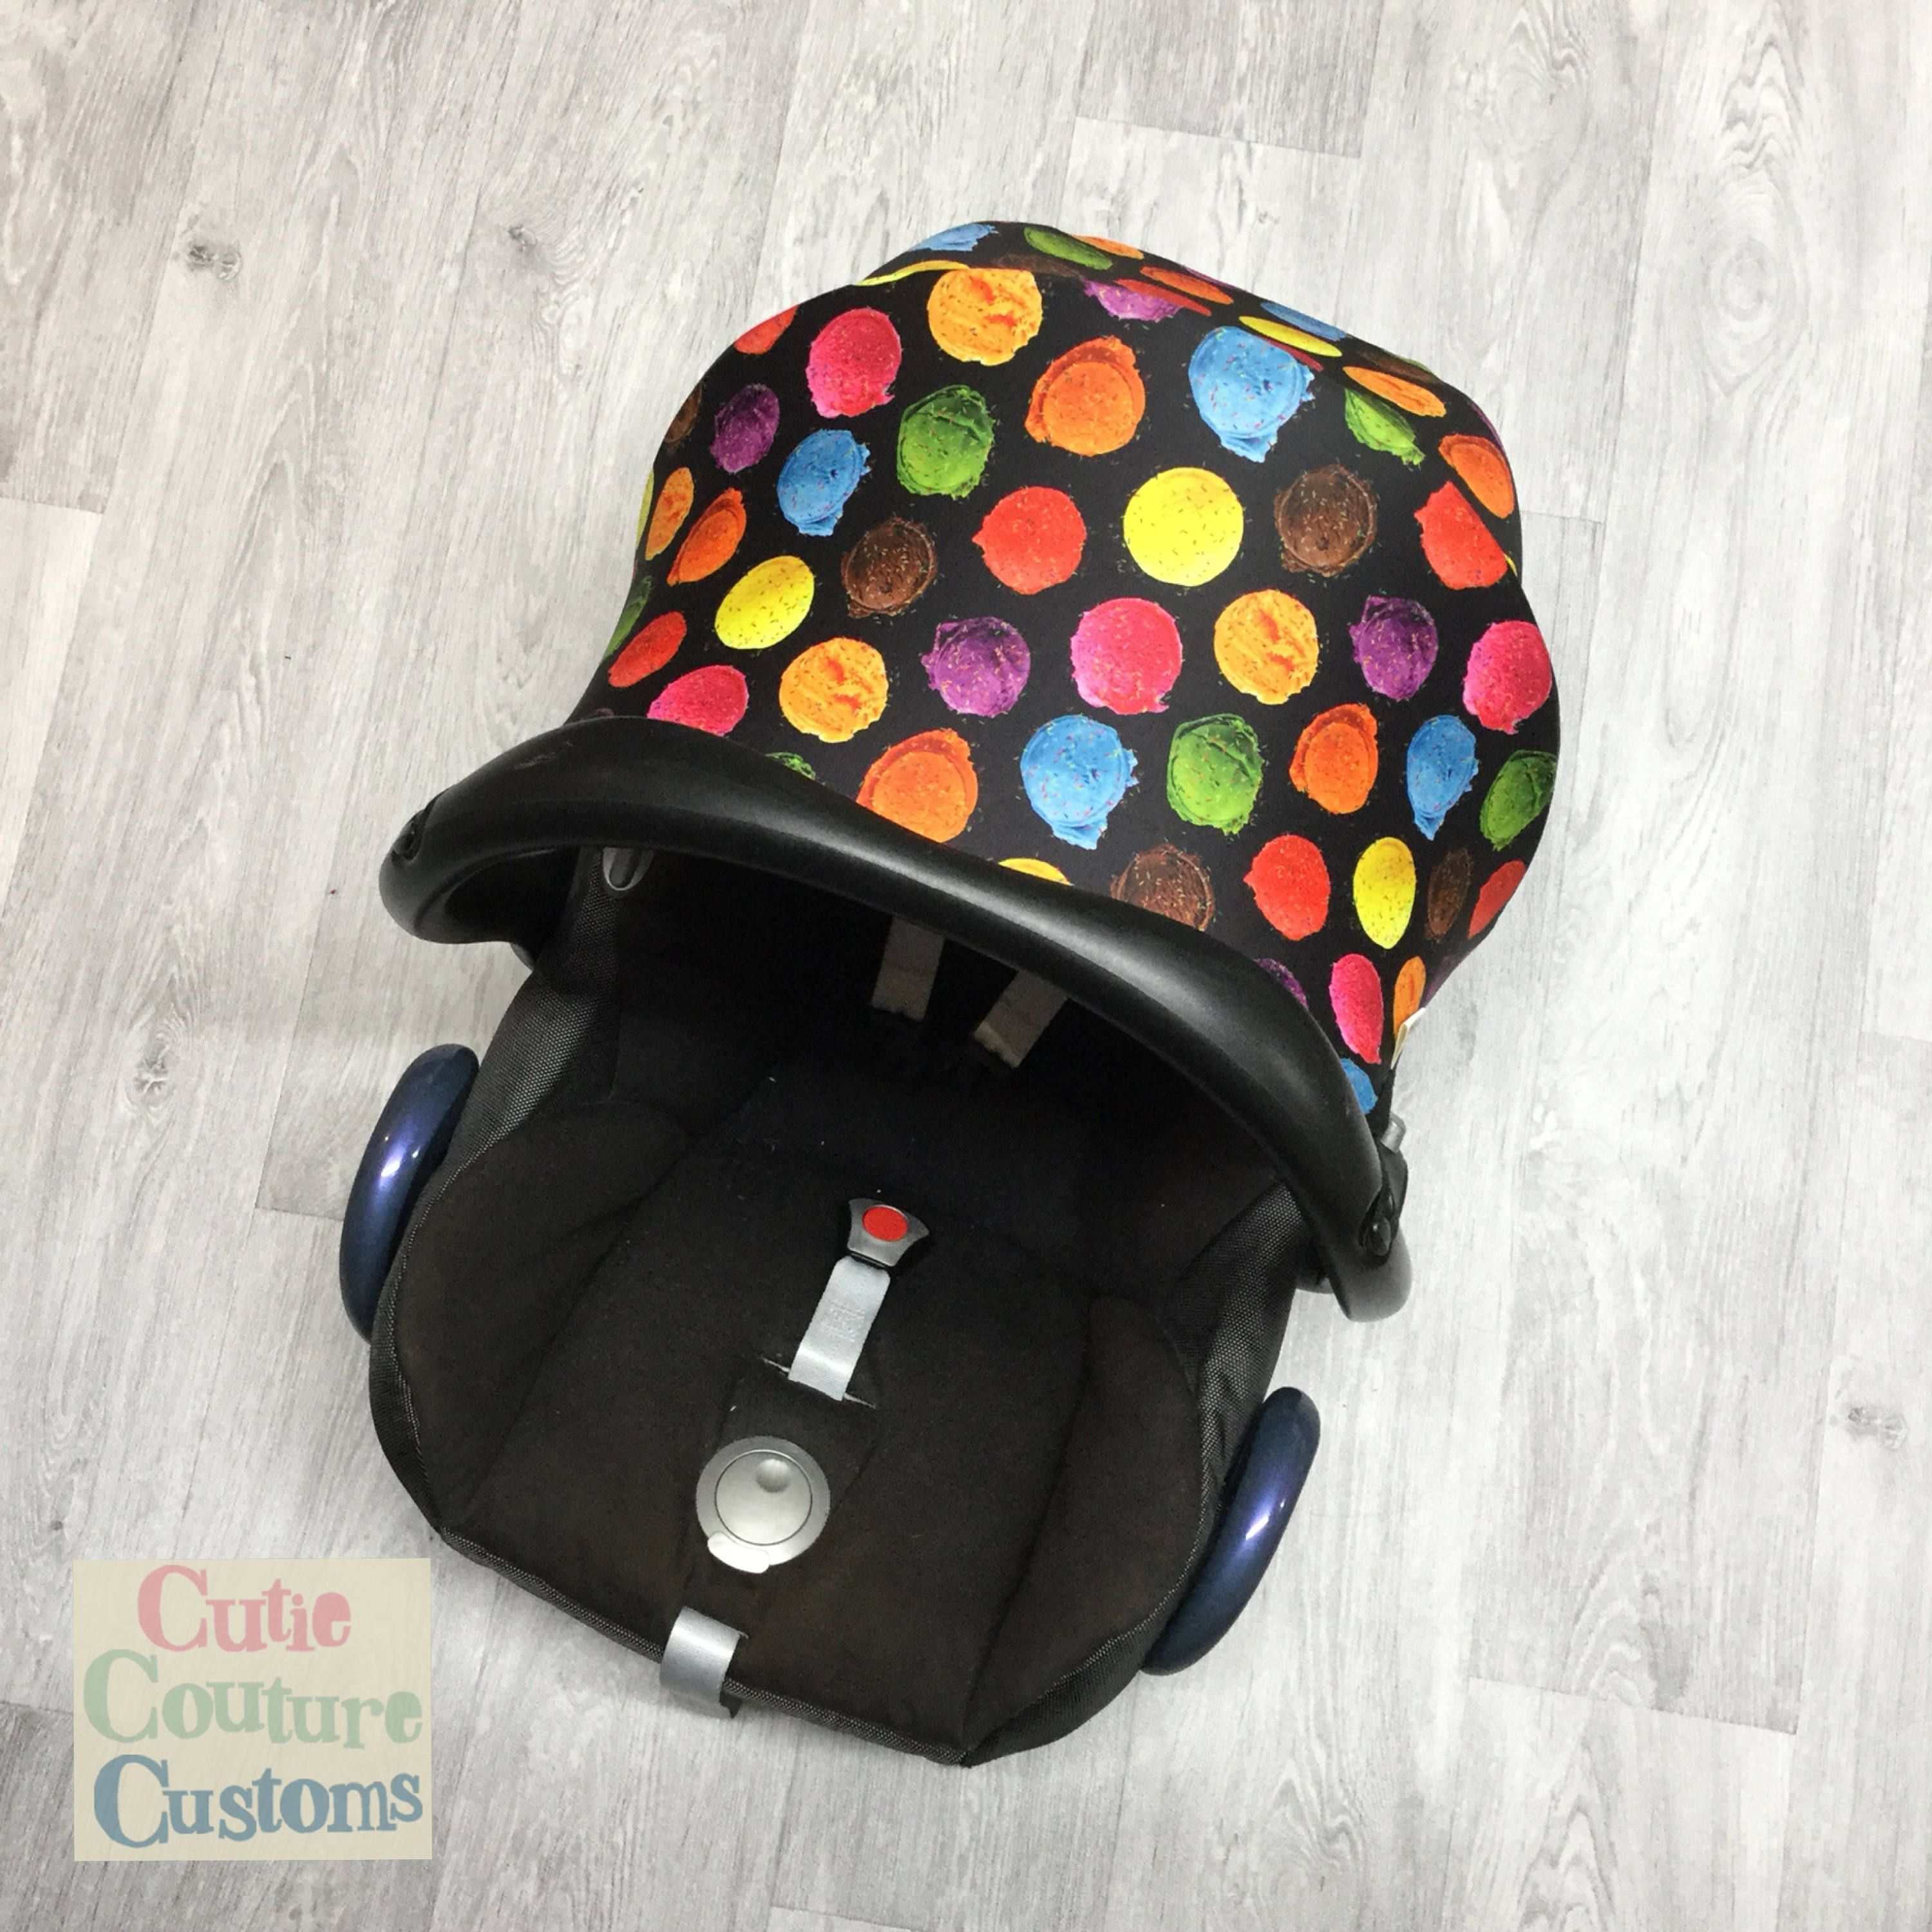 Custom Car Seat Hood / Maxi Cosi Carseat